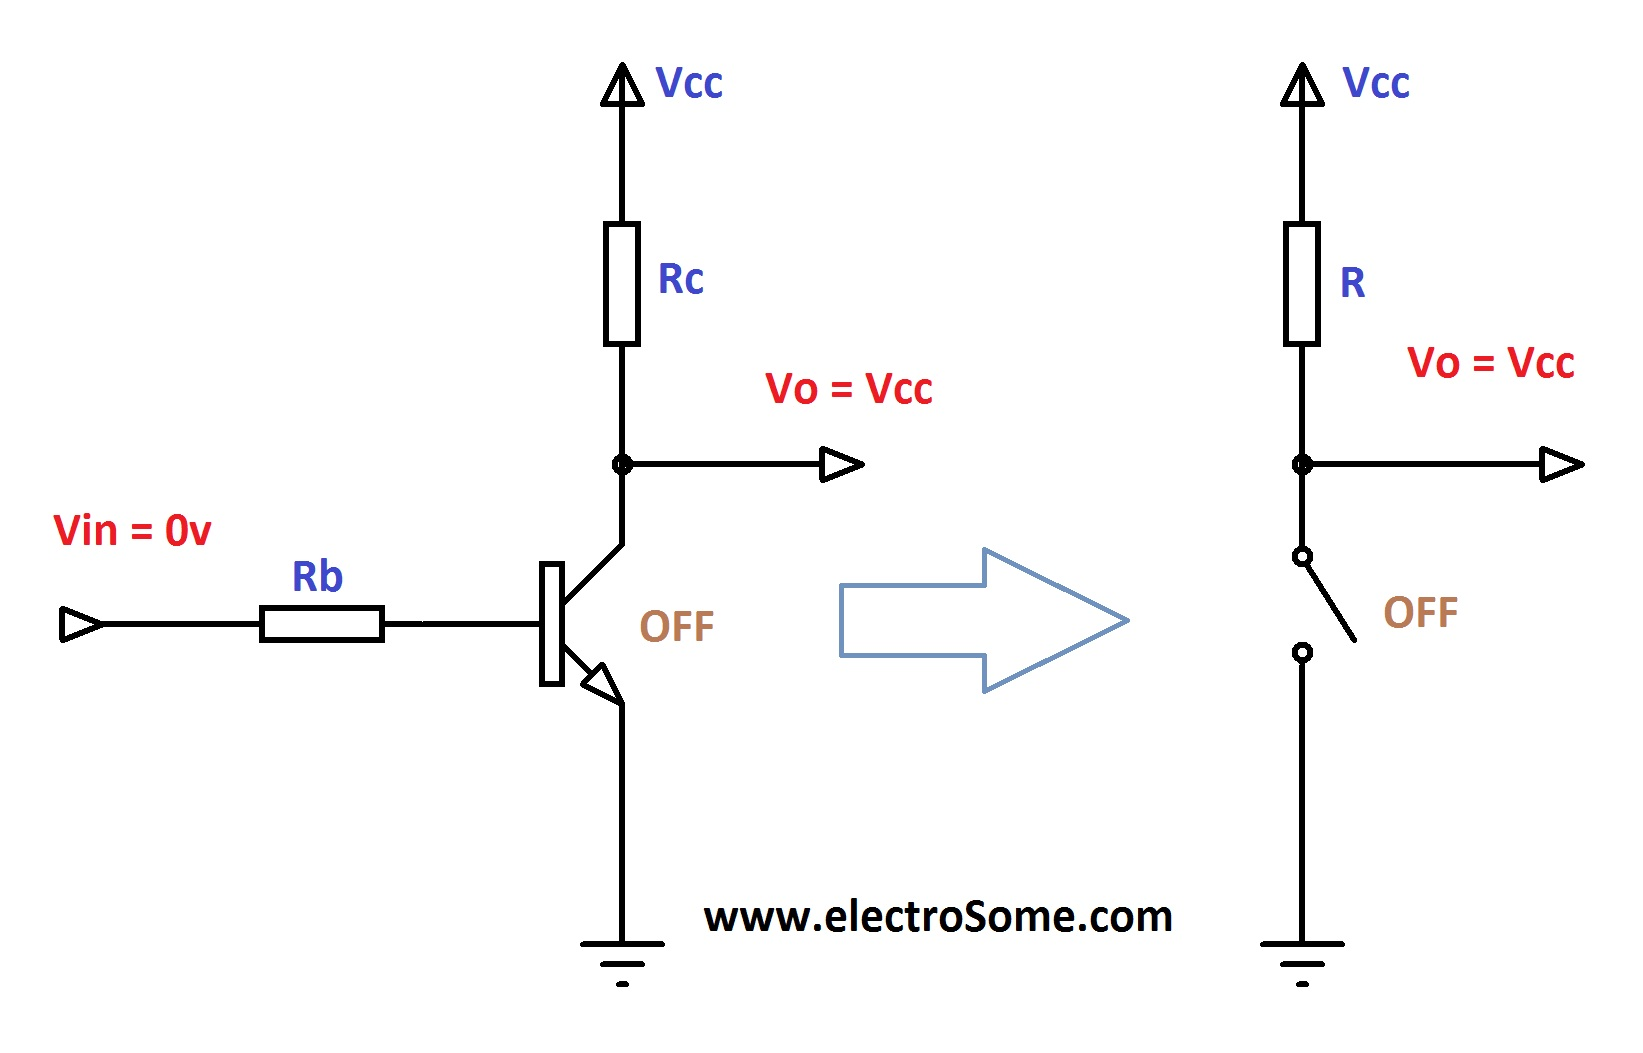 Transistor Wiring Diagram : Transistor as a switch